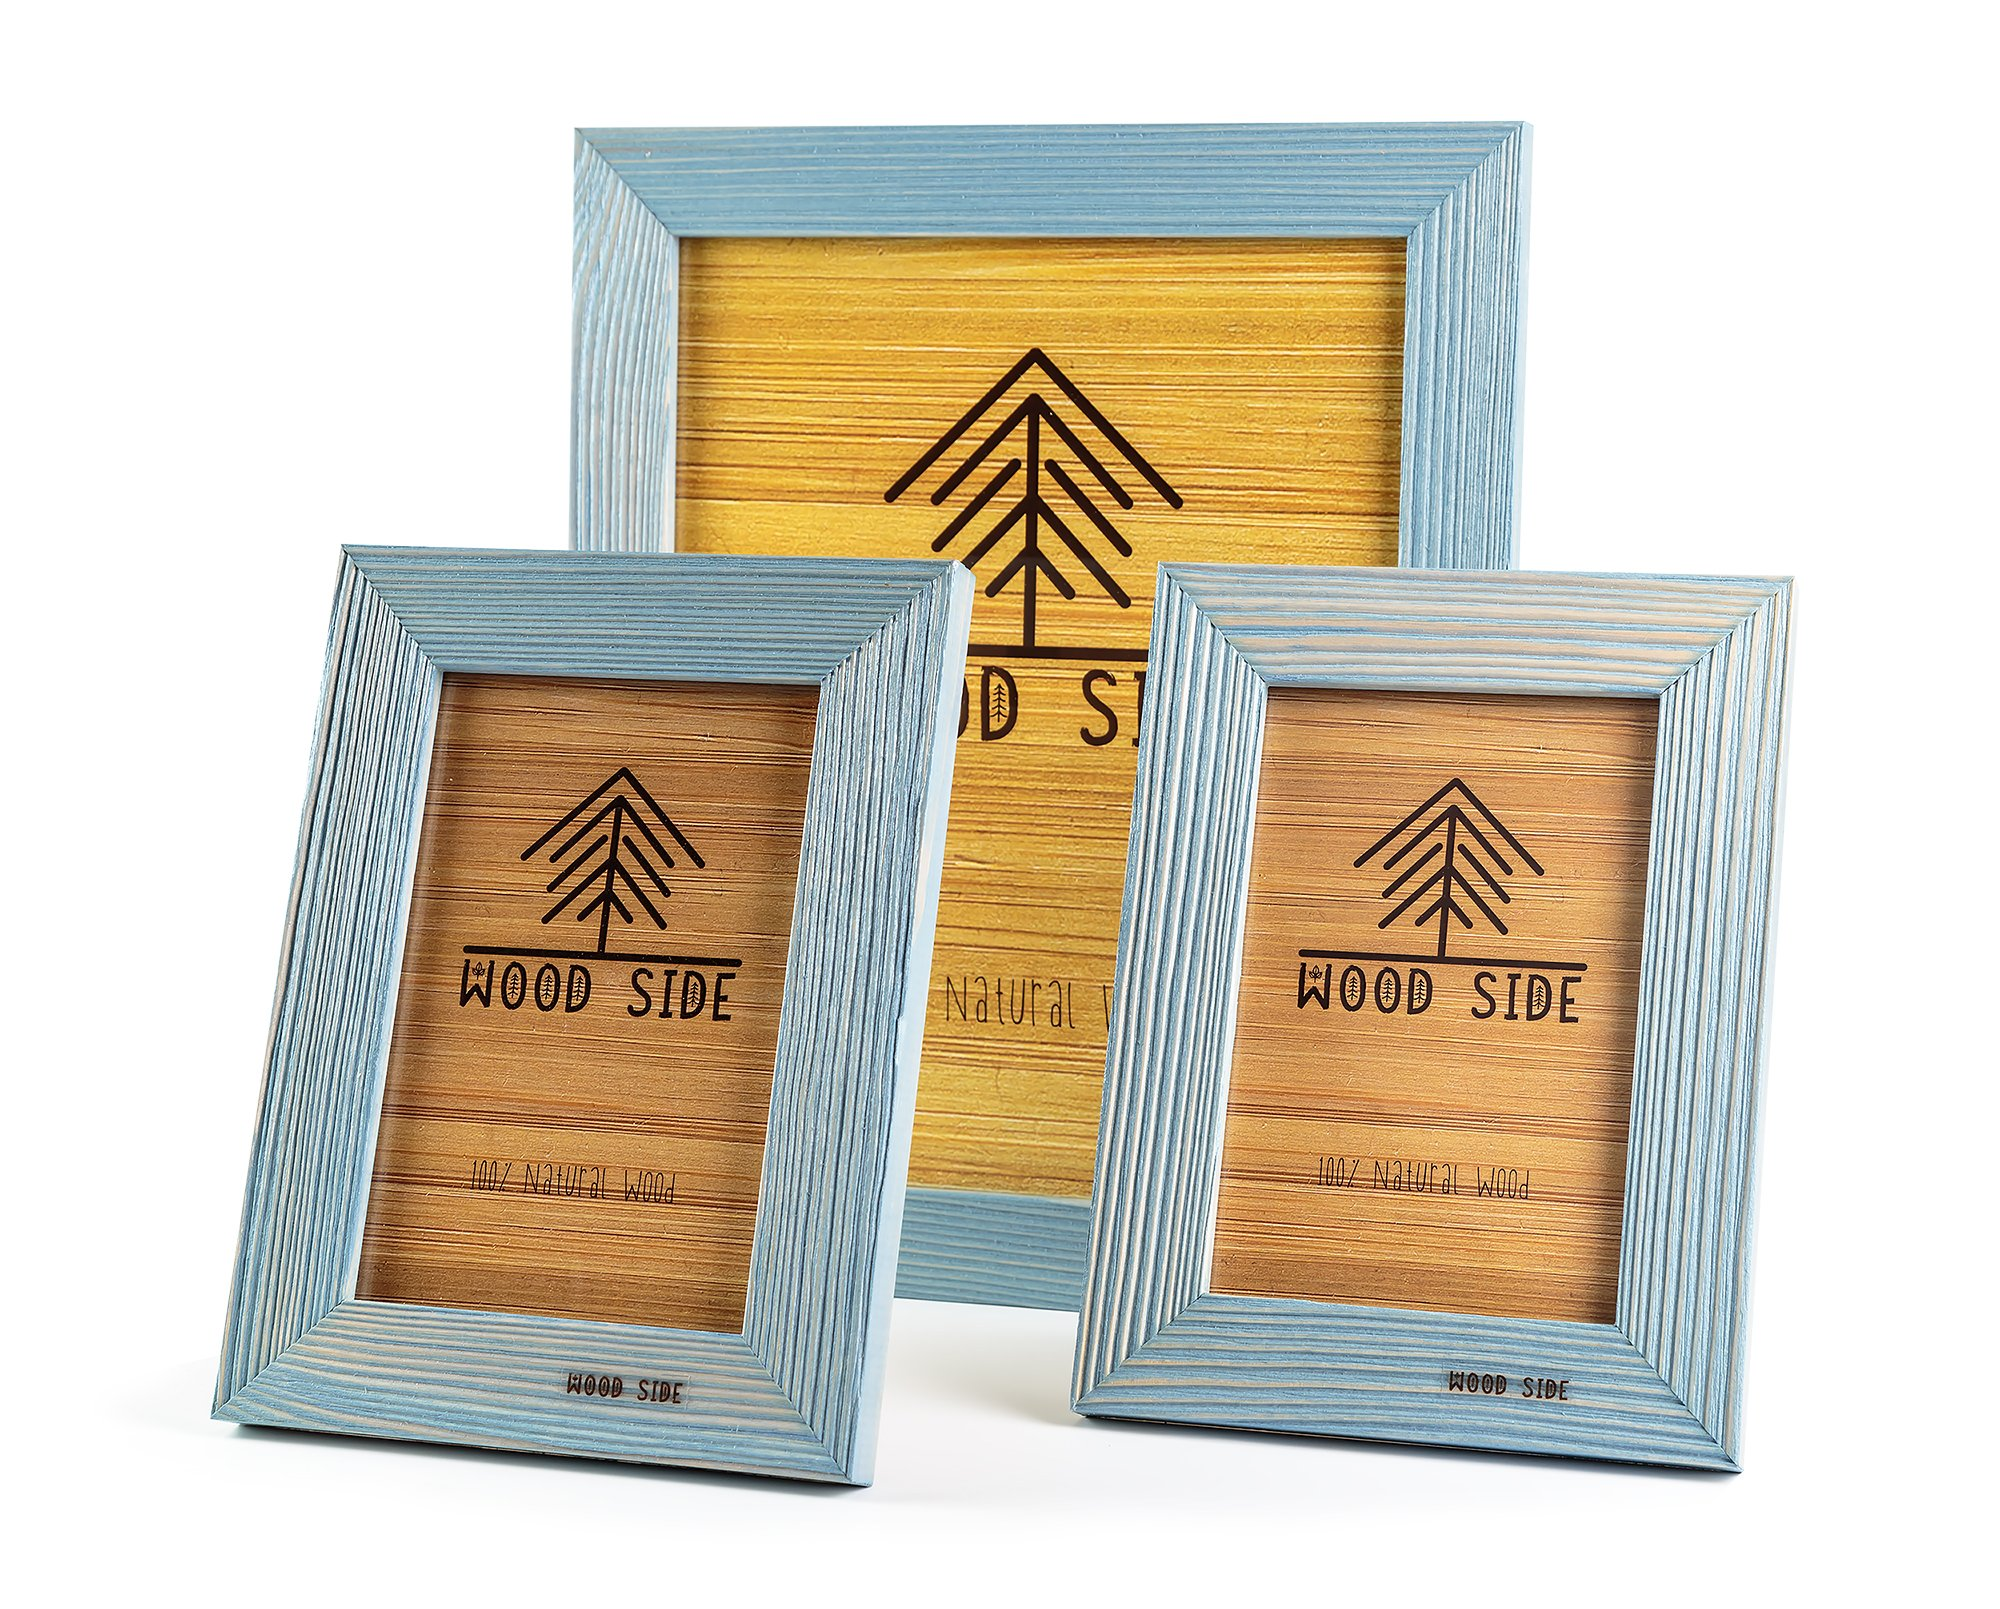 Rustic Wooden Picture Frames Blue - Turquoise Set of 3 - One 8 x 10 and Two 4 x 6 Inch Picture Frames Made of Solid Wood High Definition Glass for Table Top Display and Wall Mounting Photo Frame